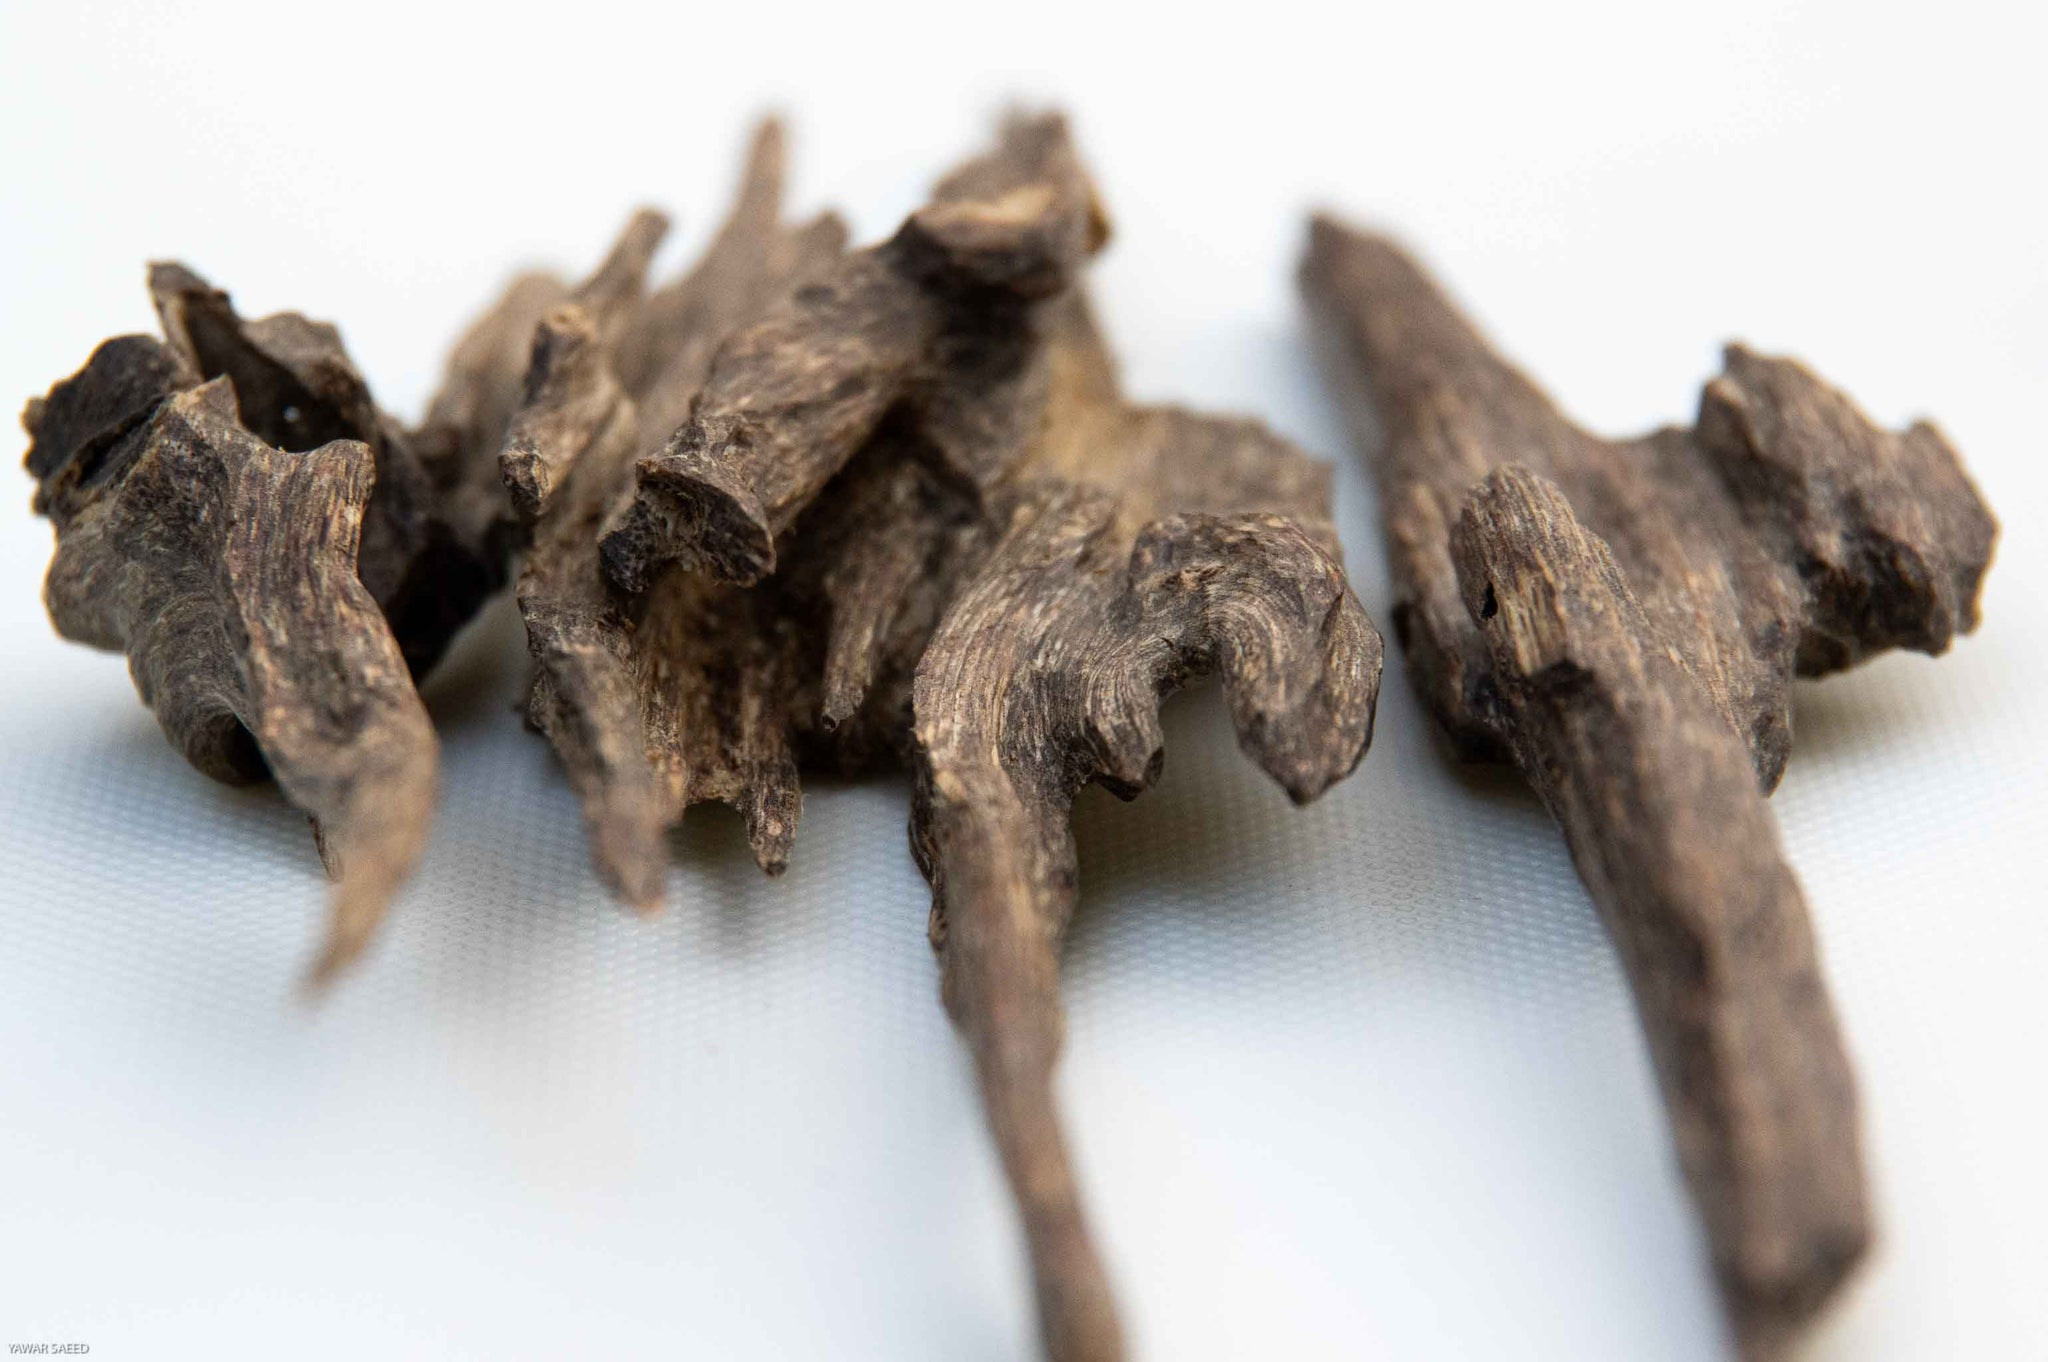 Agarwood Chips from India